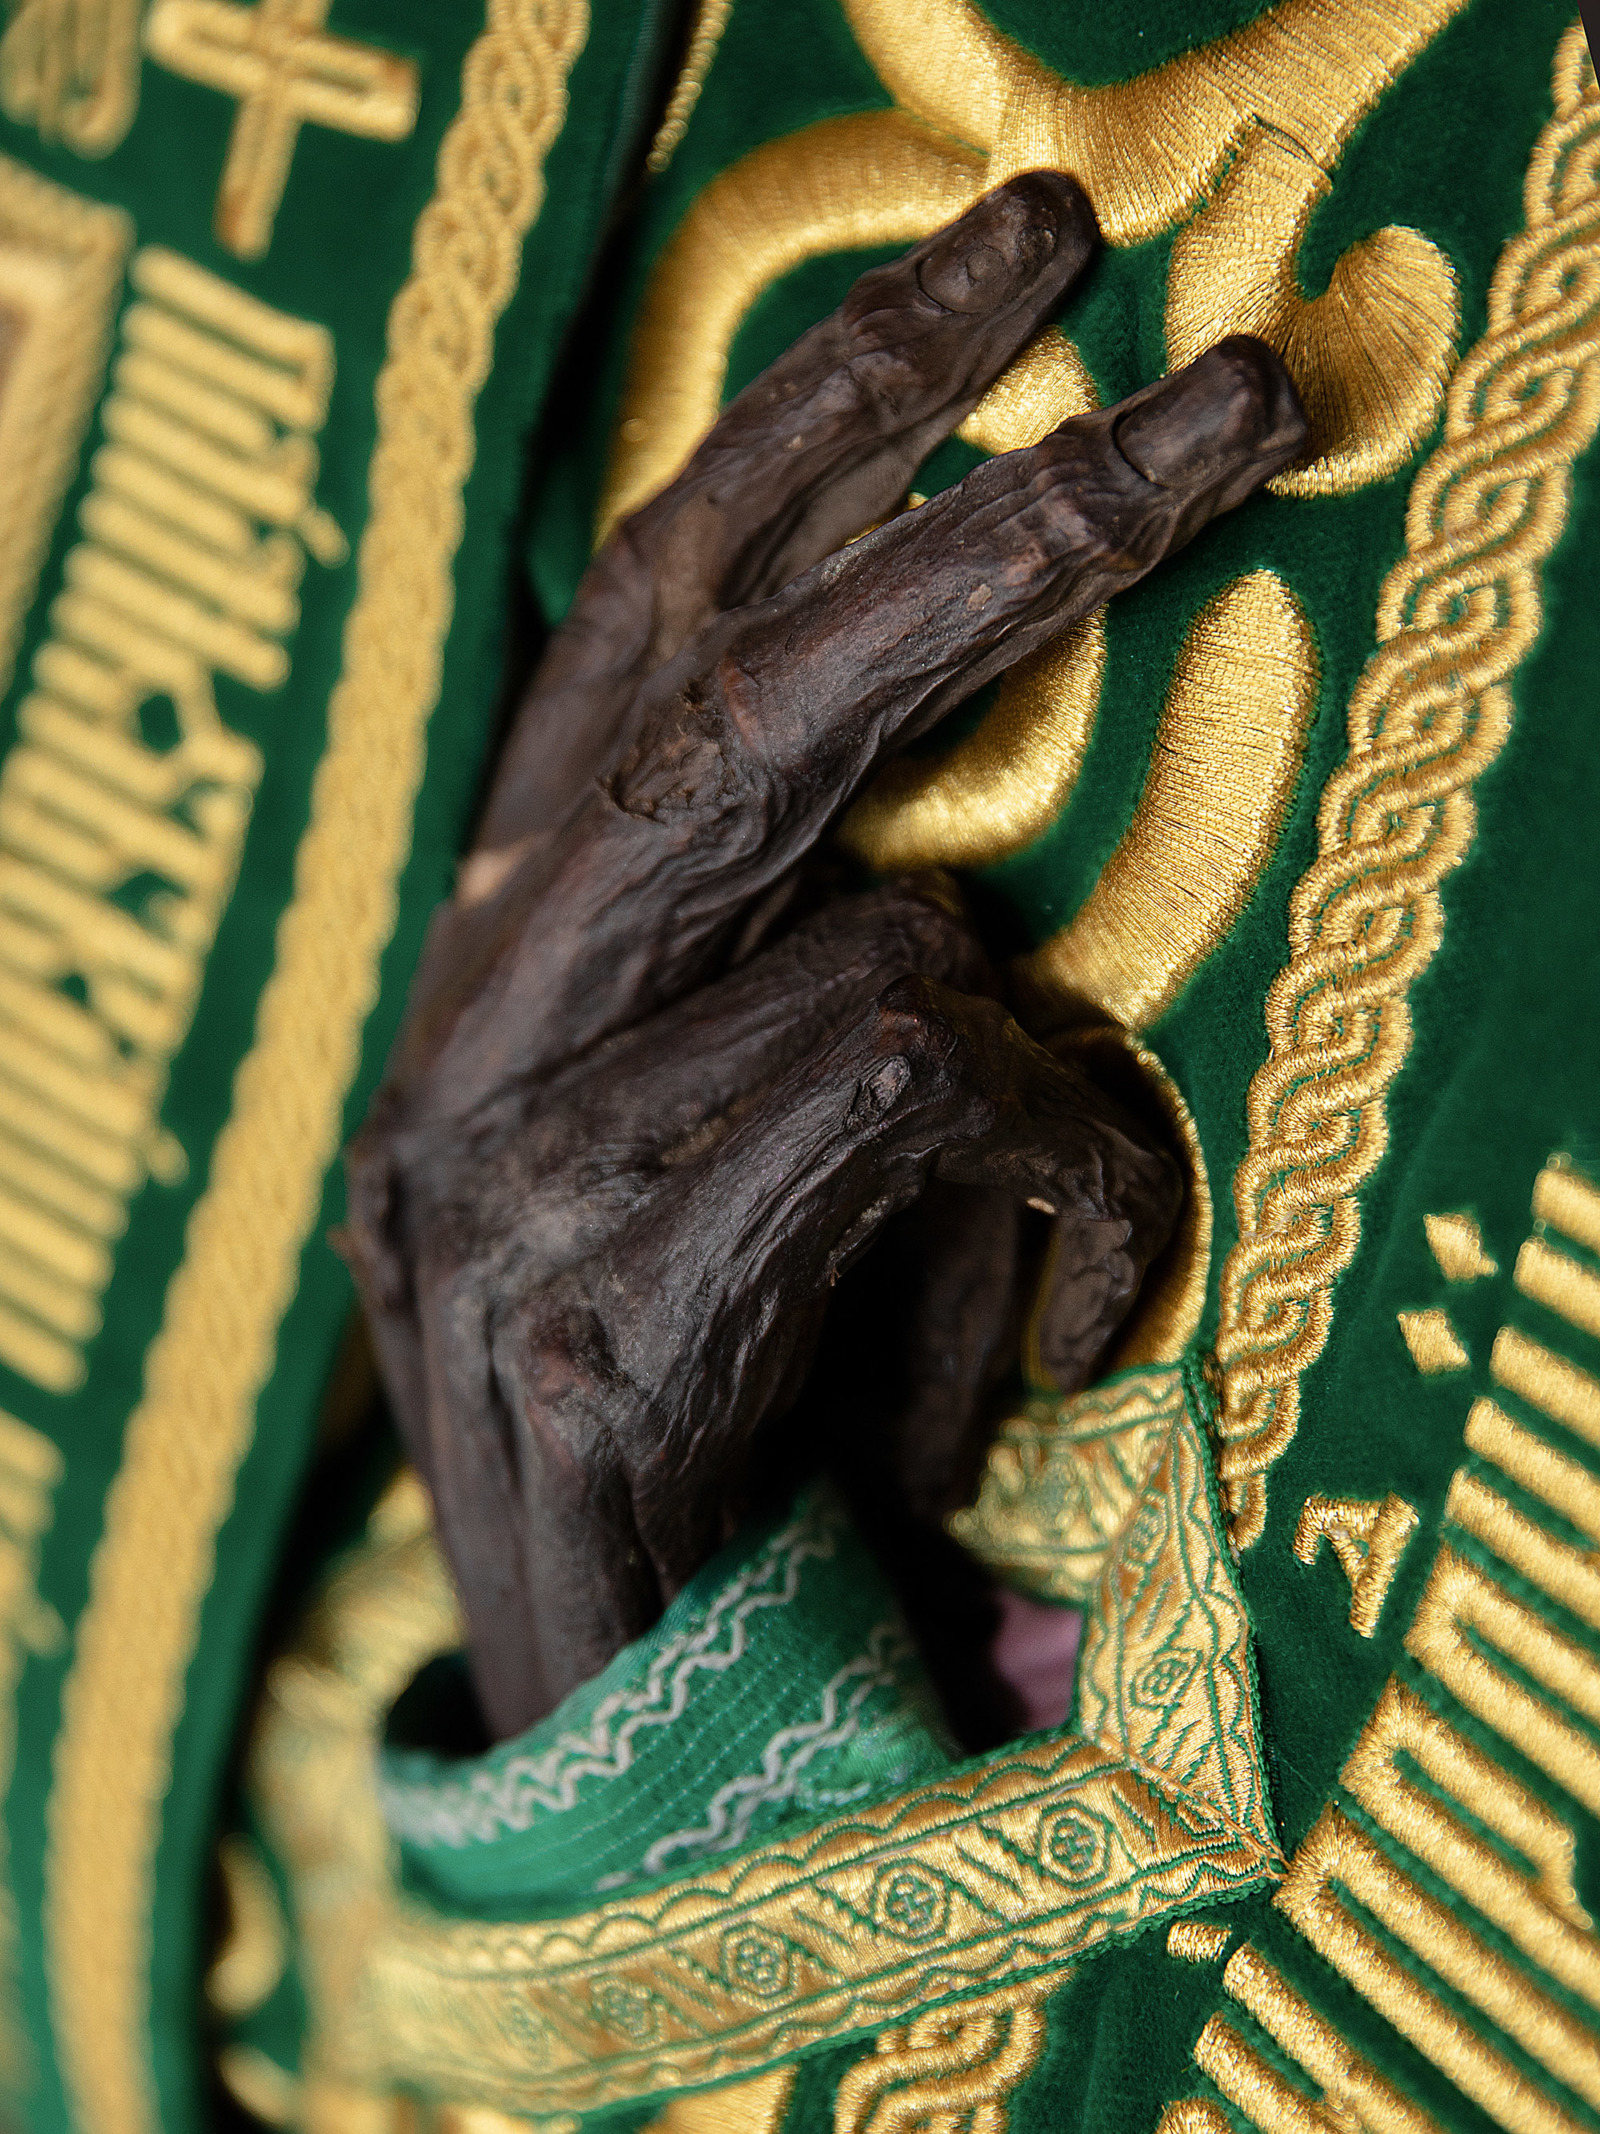 The black, dessicated hand of a saint, dressed in finery.